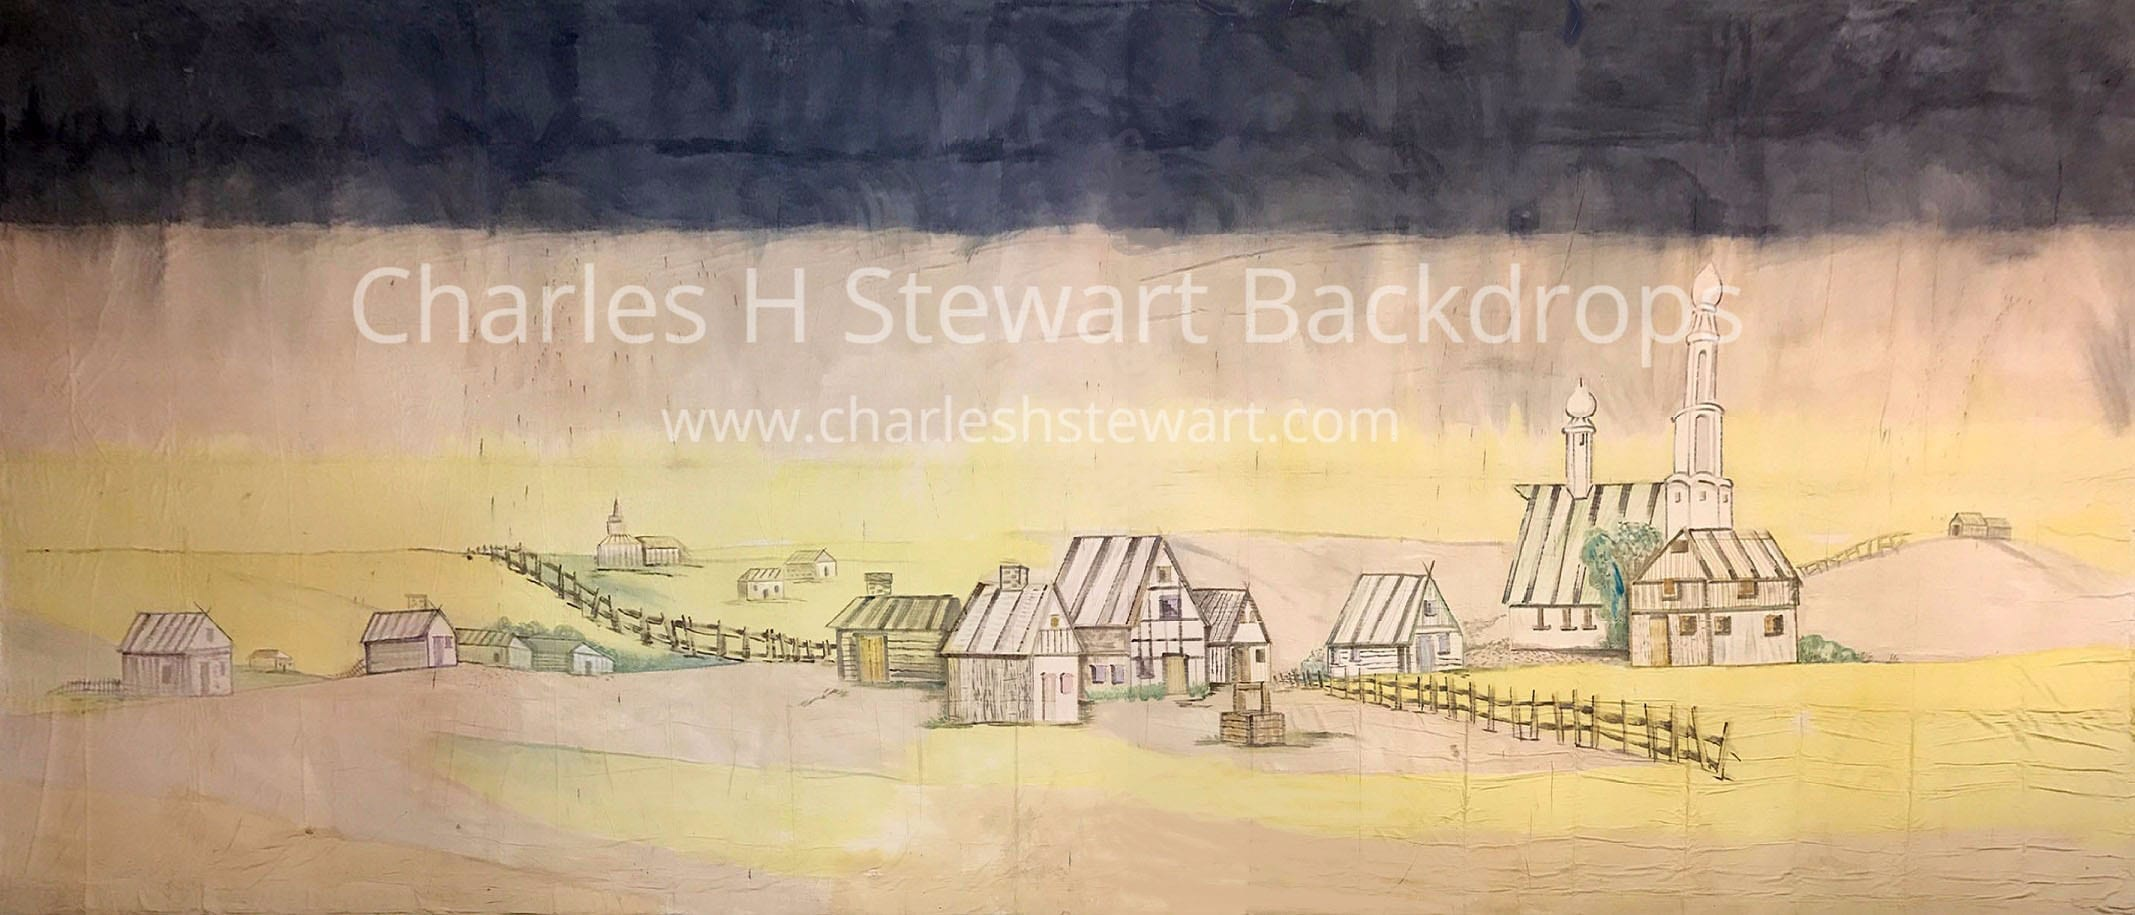 Distant Village Backdrop Backdrops By Charles H Stewart